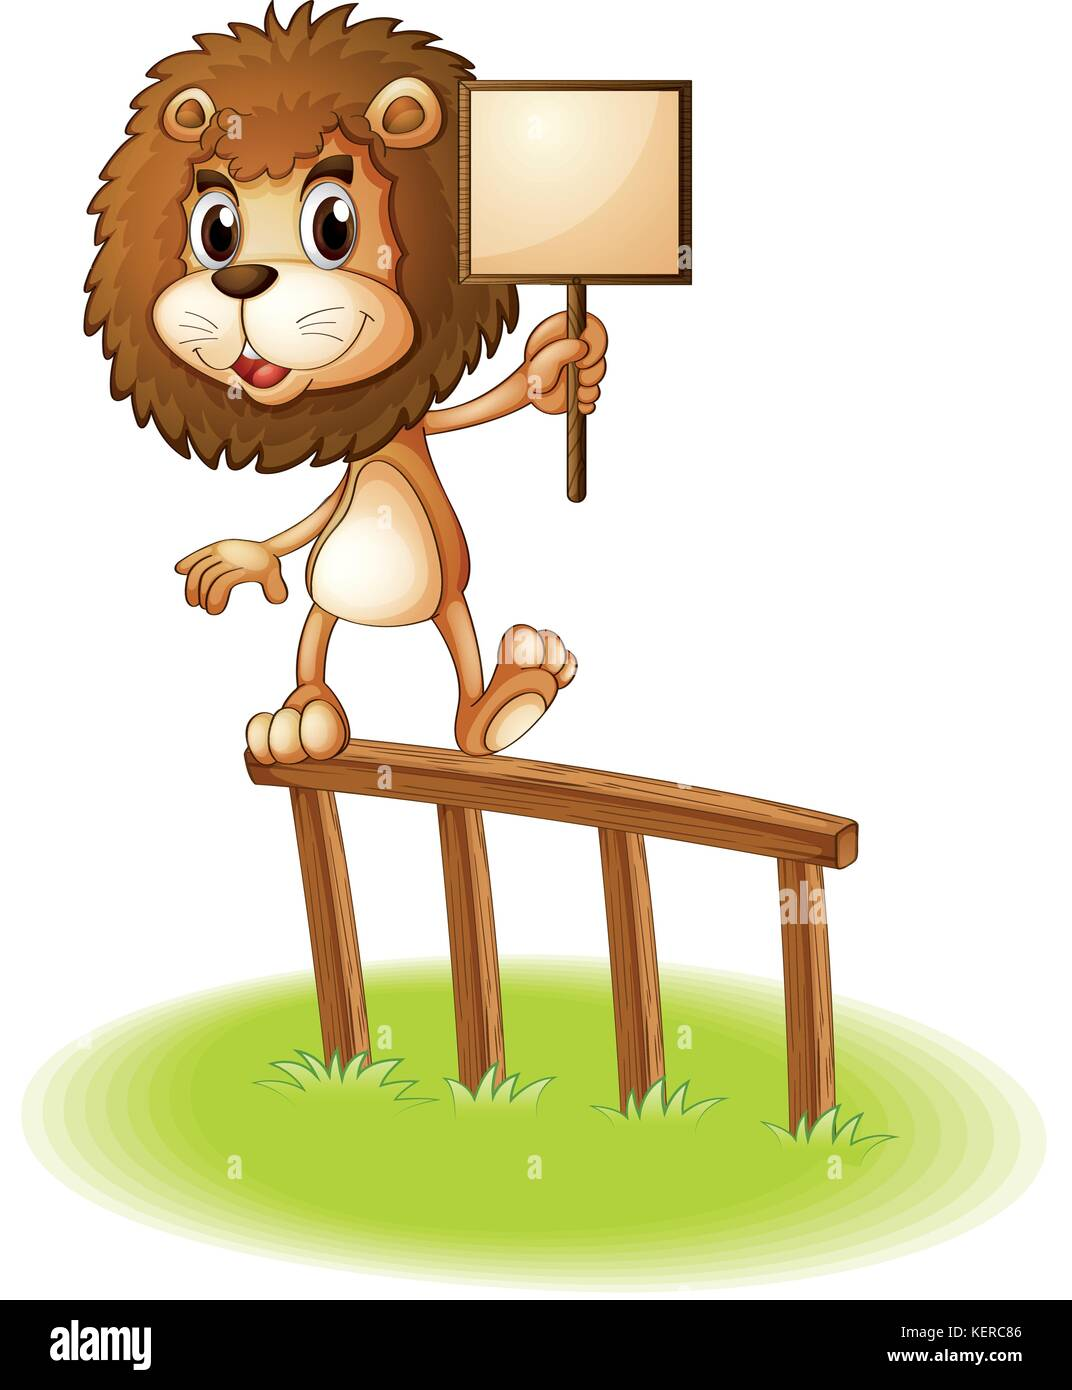 Illustration of a lion standing on a wooden fence holding an empty signboard on a white background - Stock Vector